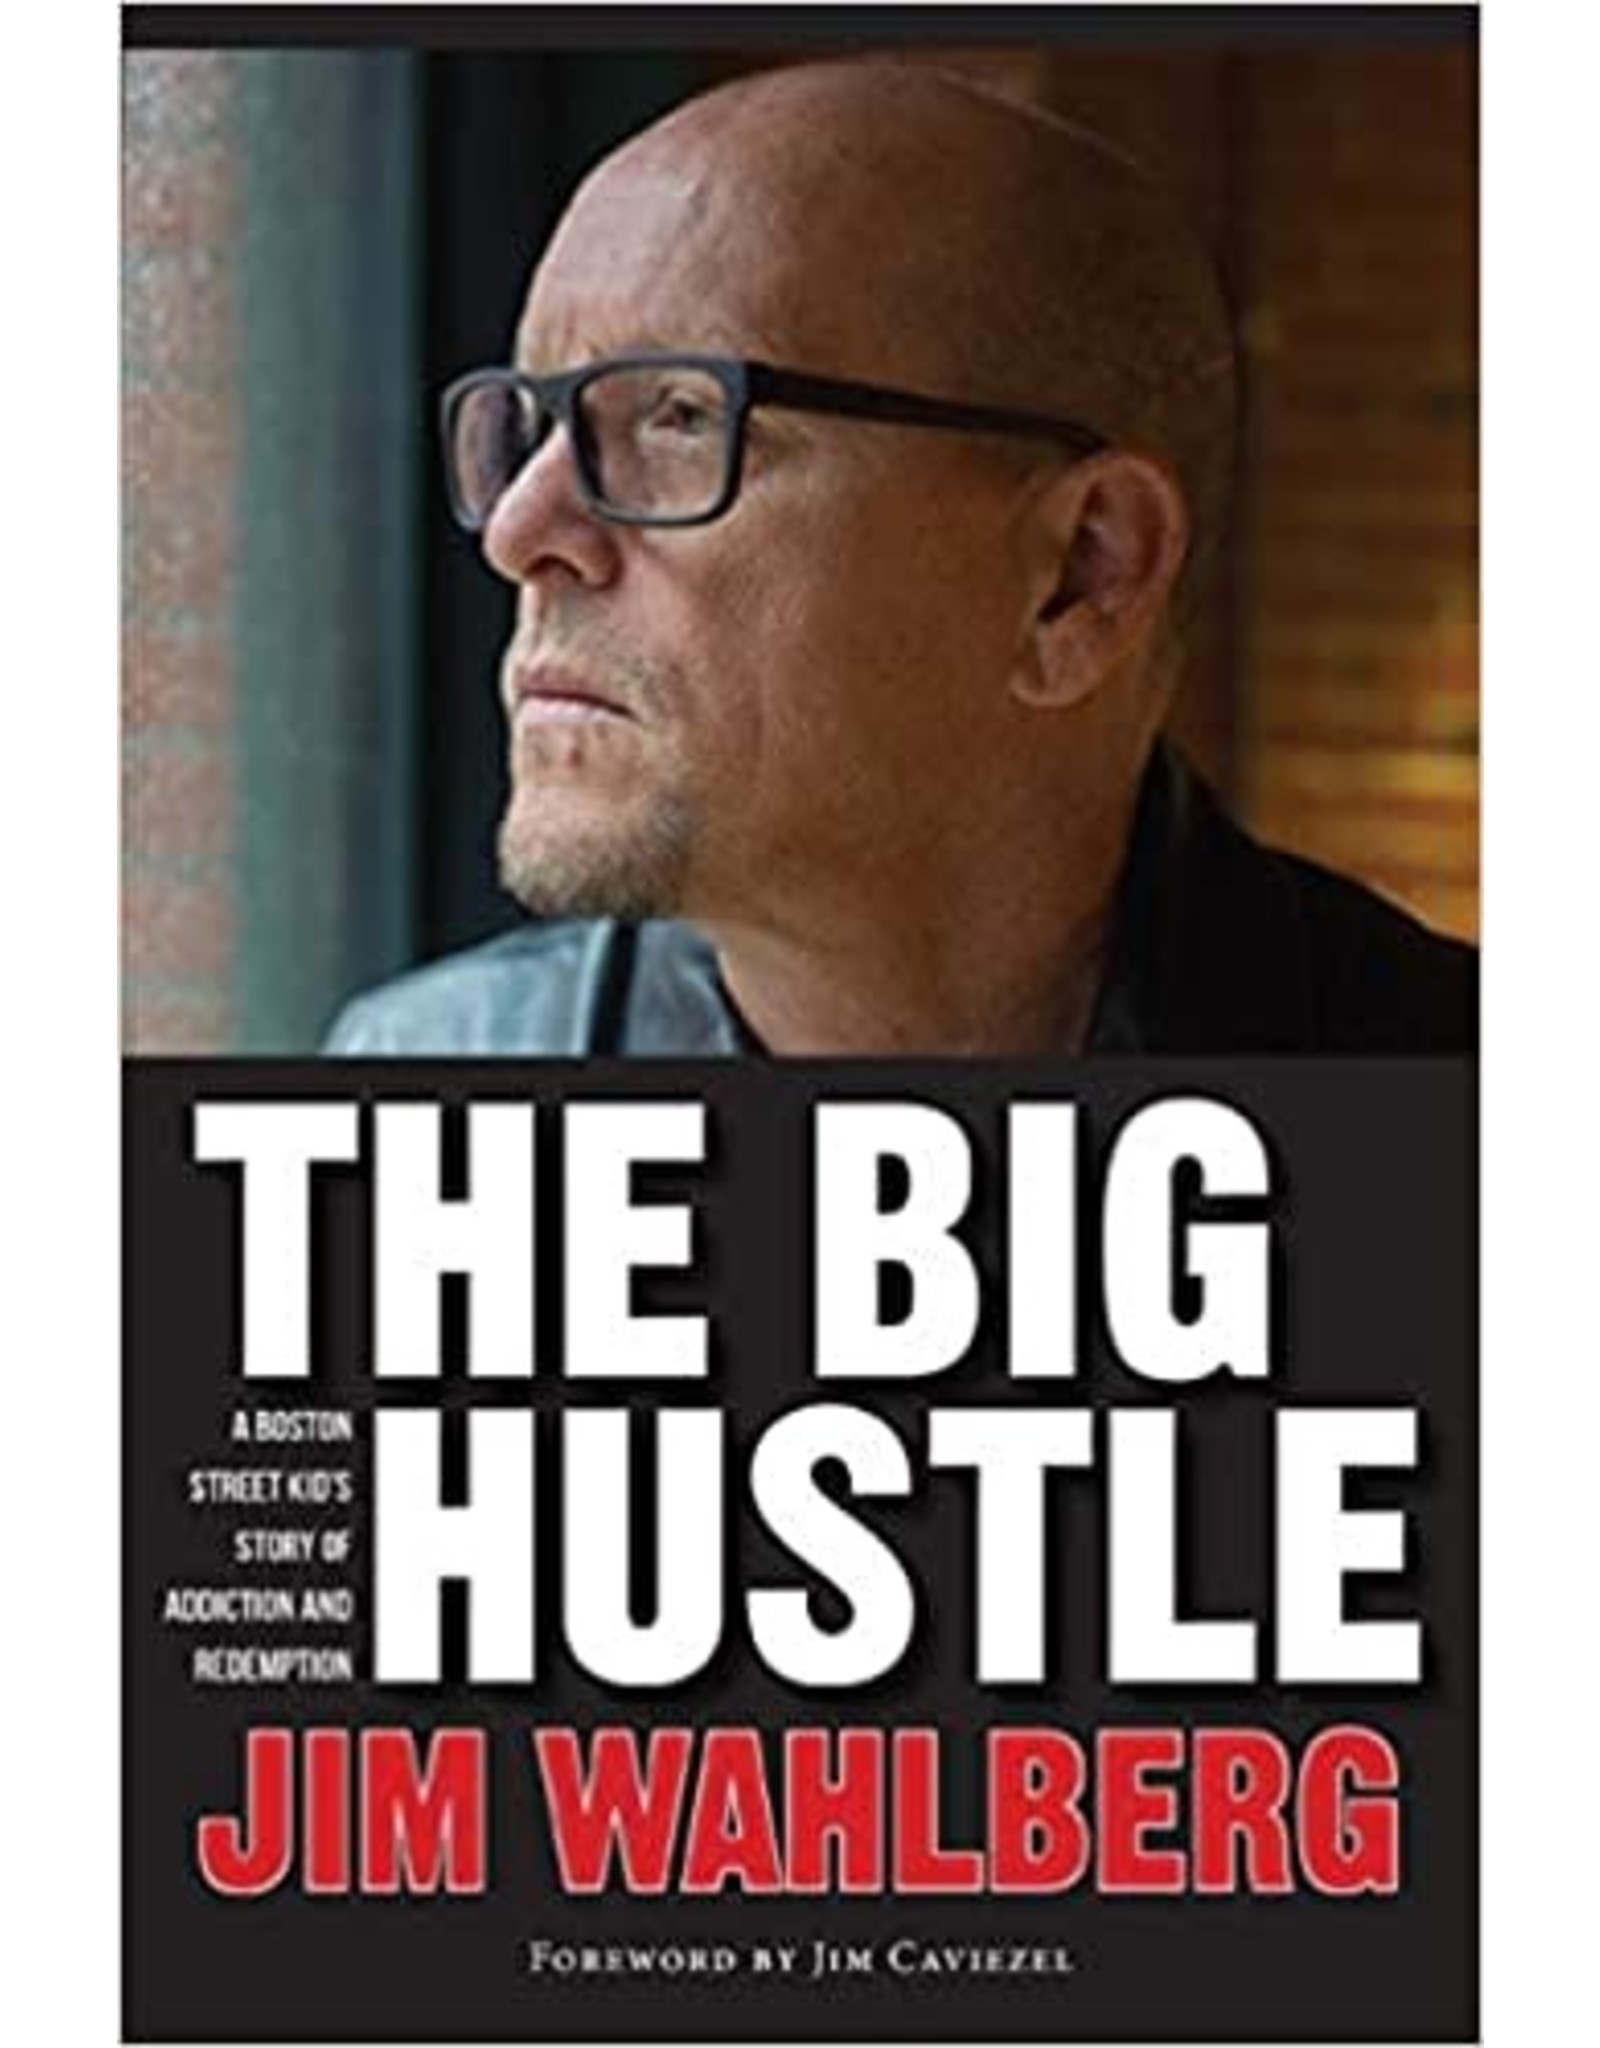 Big Hustle, The: A Boston Street Kid's Story of Addiction & Redemption